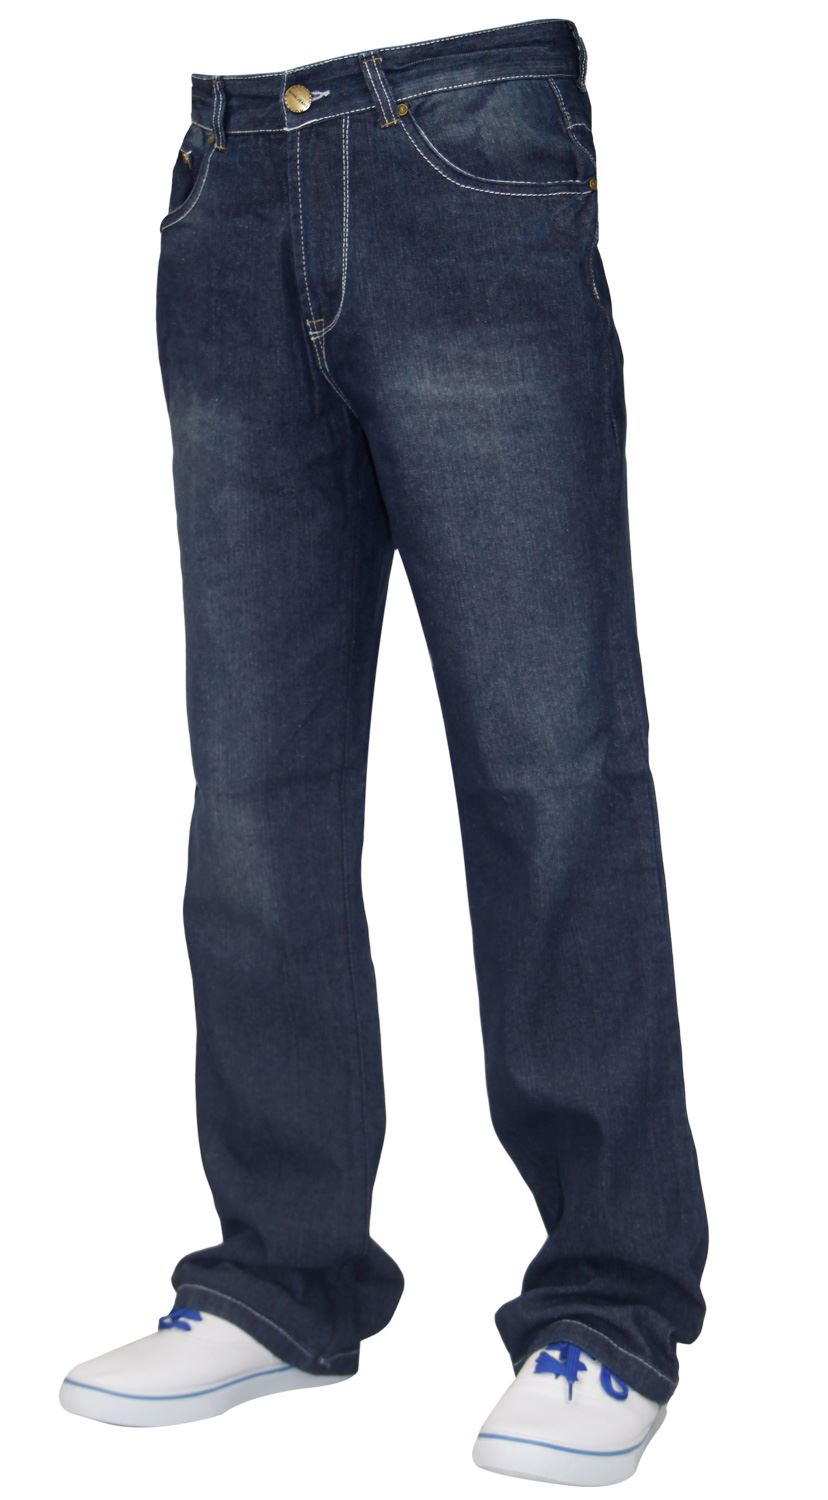 Wrangler's Premium Performance Cowboy Cut® jean features 20% longer lasting denim, a more comfortable waist, a functional watch pocket, deeper front pockets, a /5().